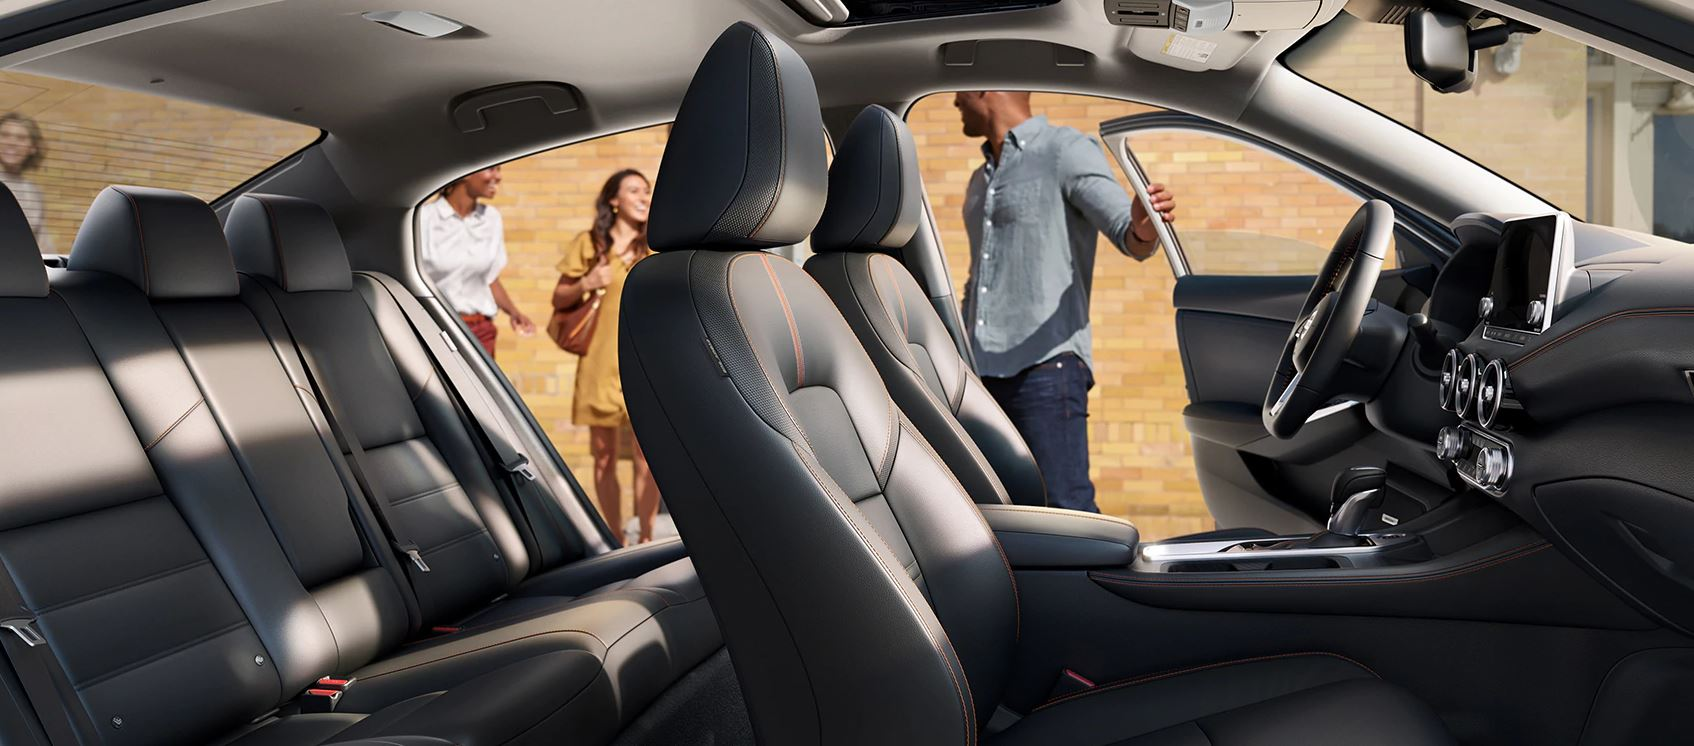 Cabin of the 2020 Sentra